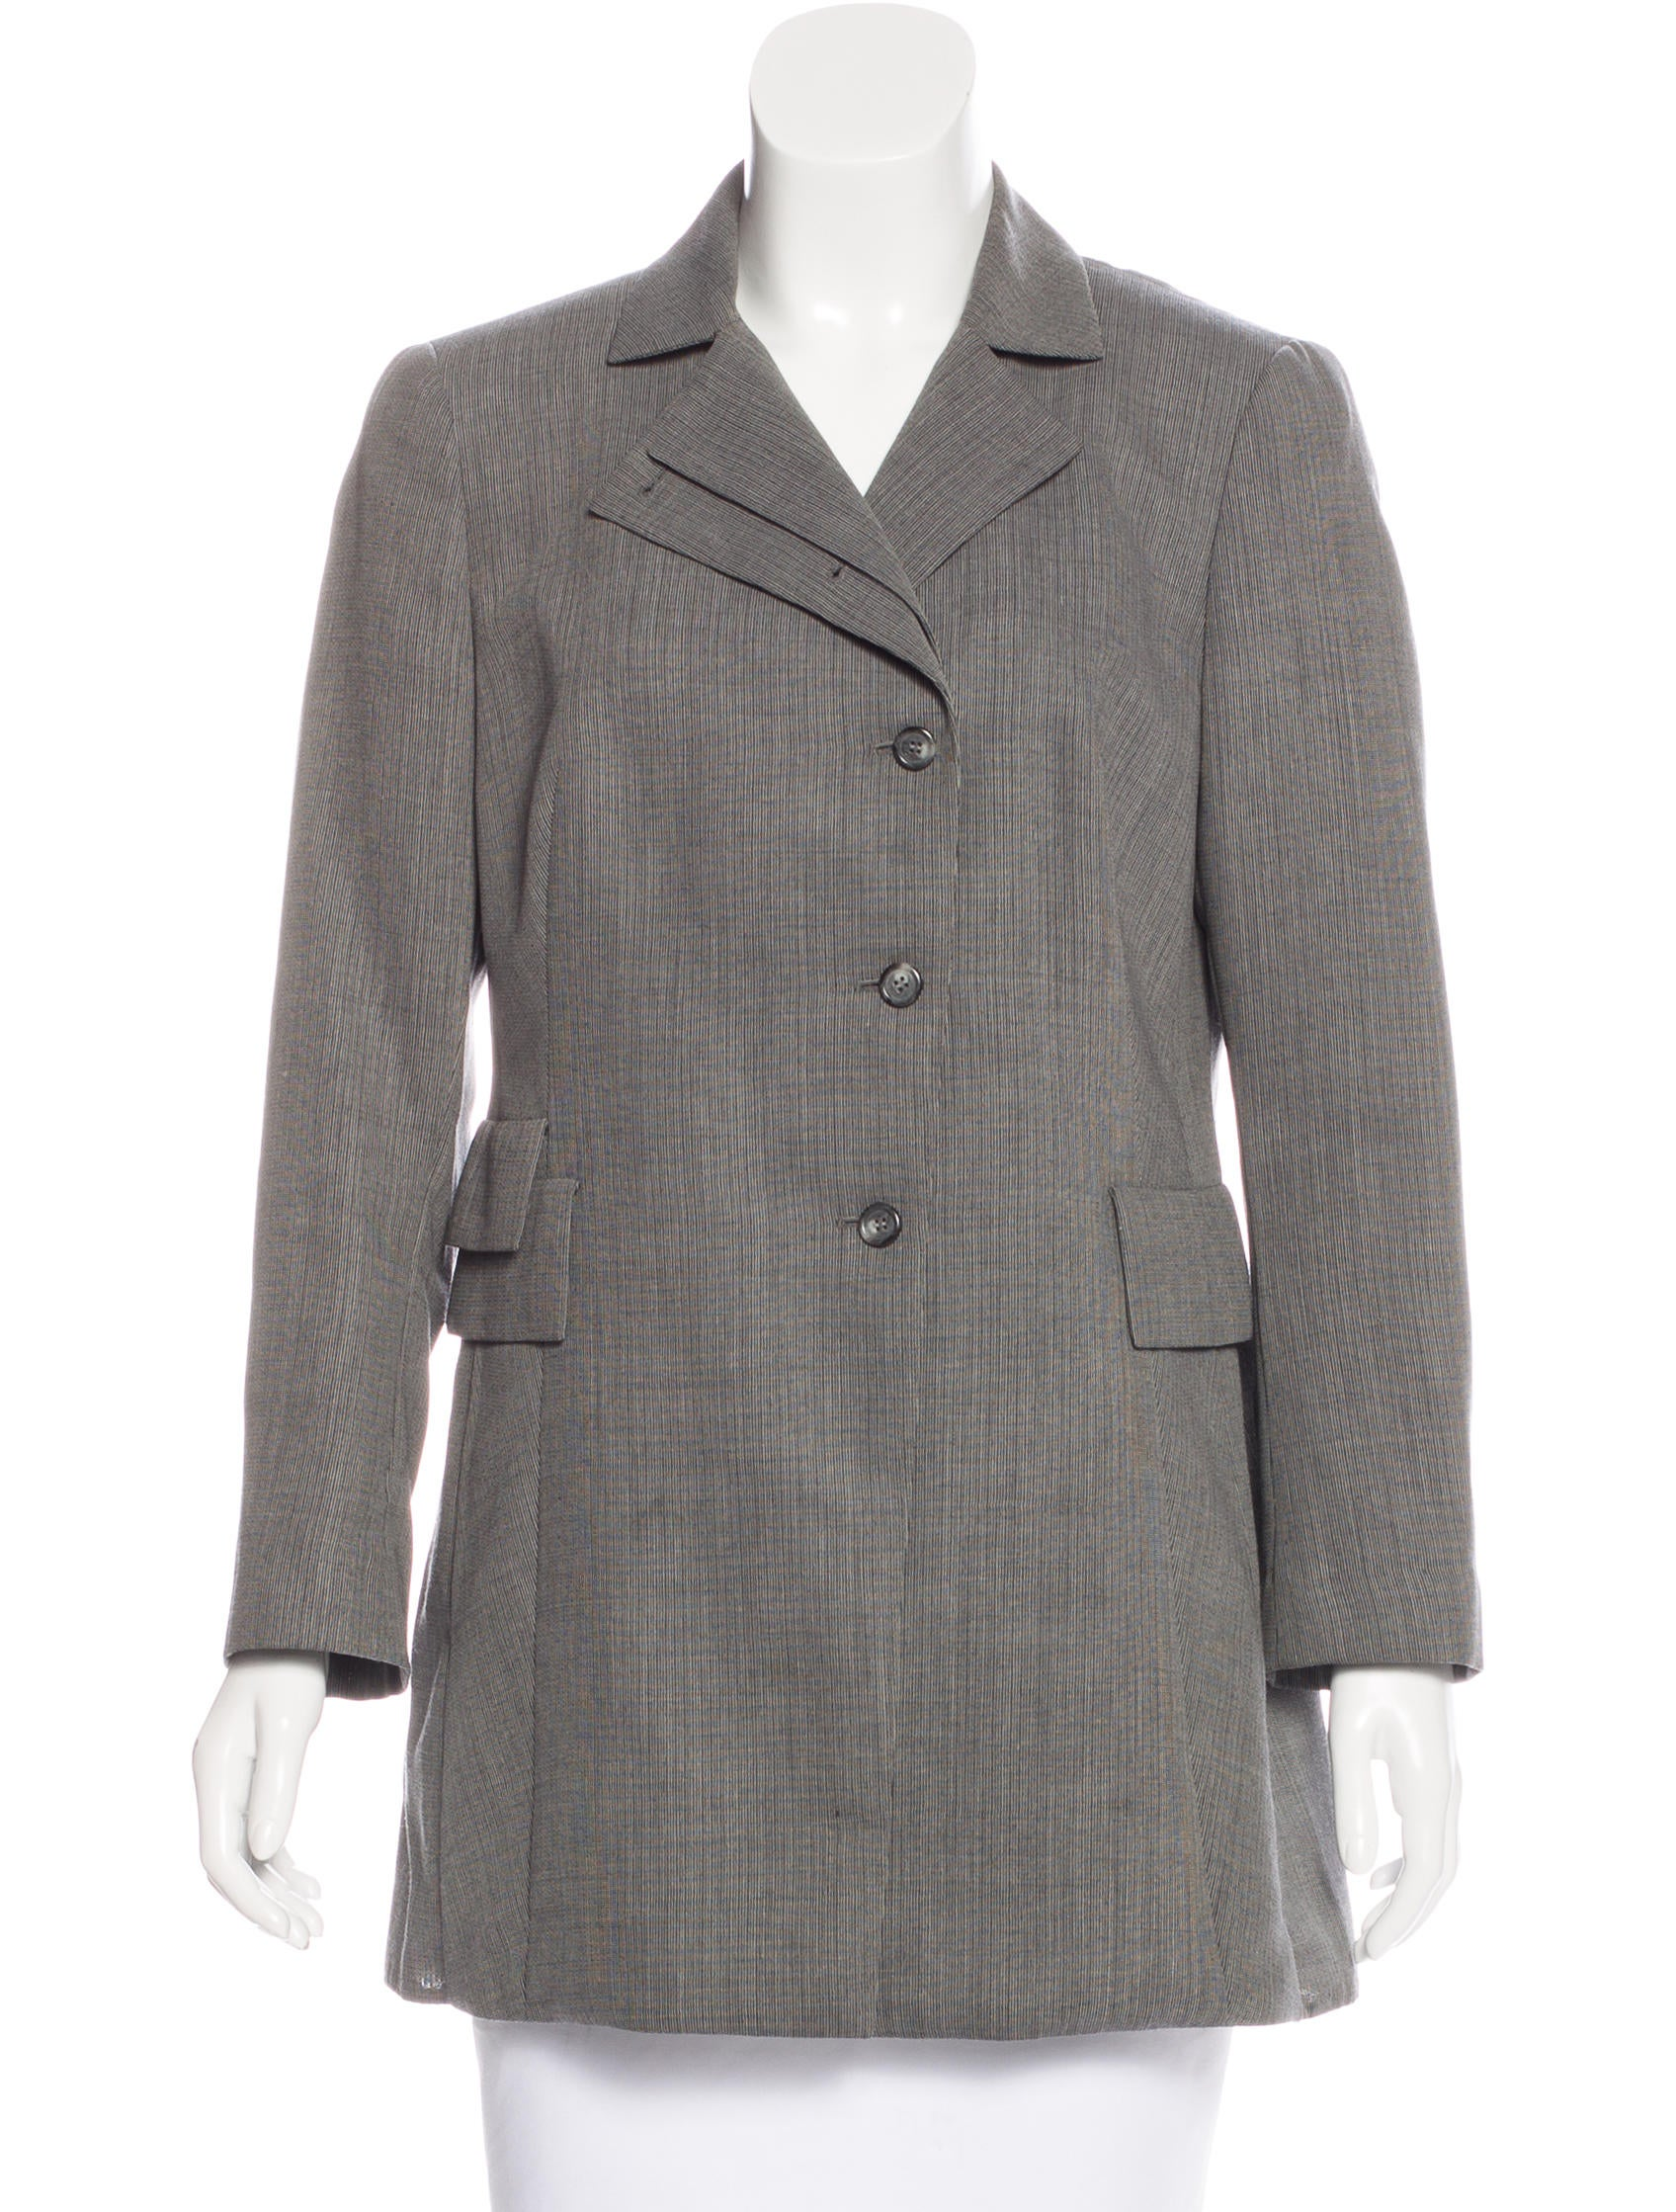 Long wool blend blazer with notch collar. Button front. Long sleeves with buttons at vent. Front pockets. Front and back shaping seams. Back vent. Front hem. I am the Disclaimer. I am one of 15 disclaimers. I am 2 of 15 disclaimers. Customer Service EMAIL US.